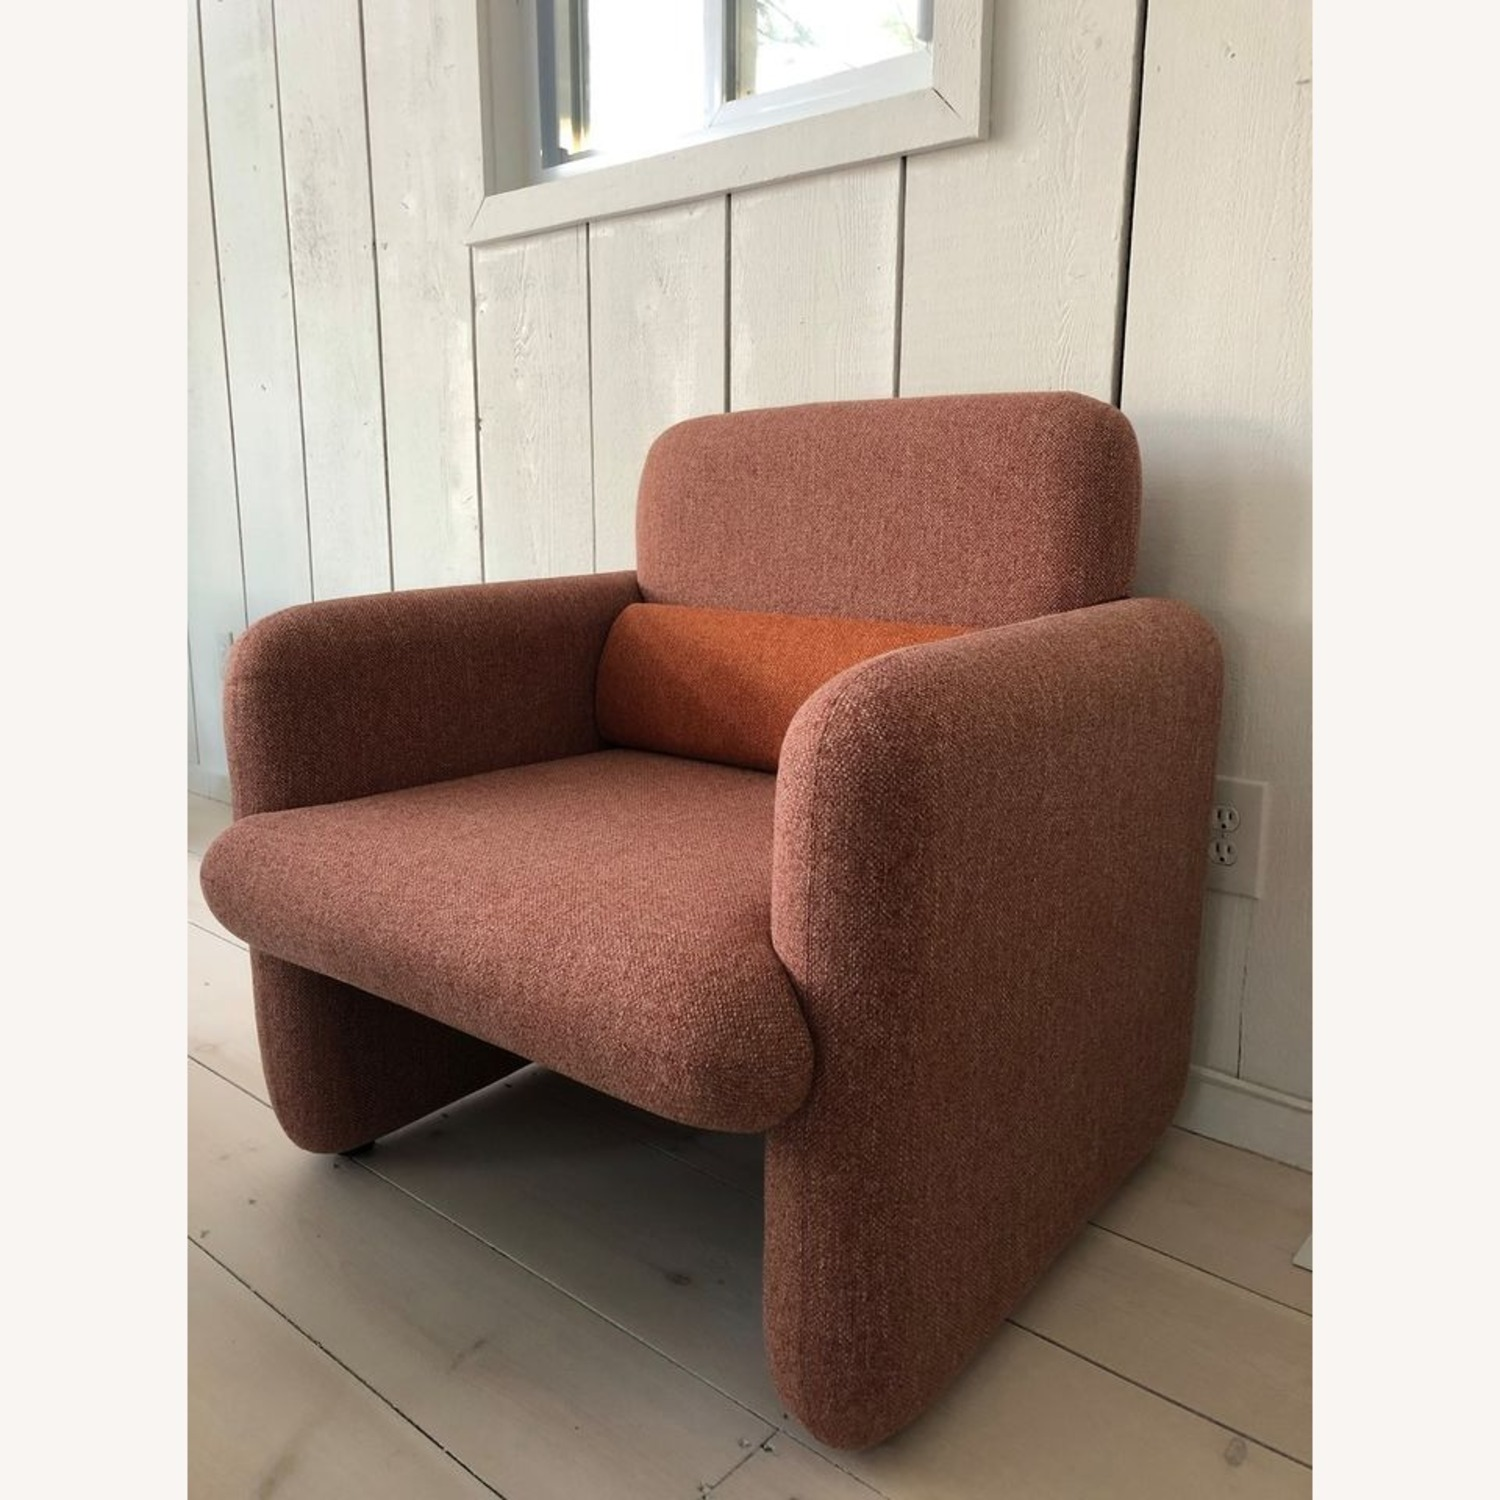 Industry West Plume Lounge Chair - Red/Pink - image-2